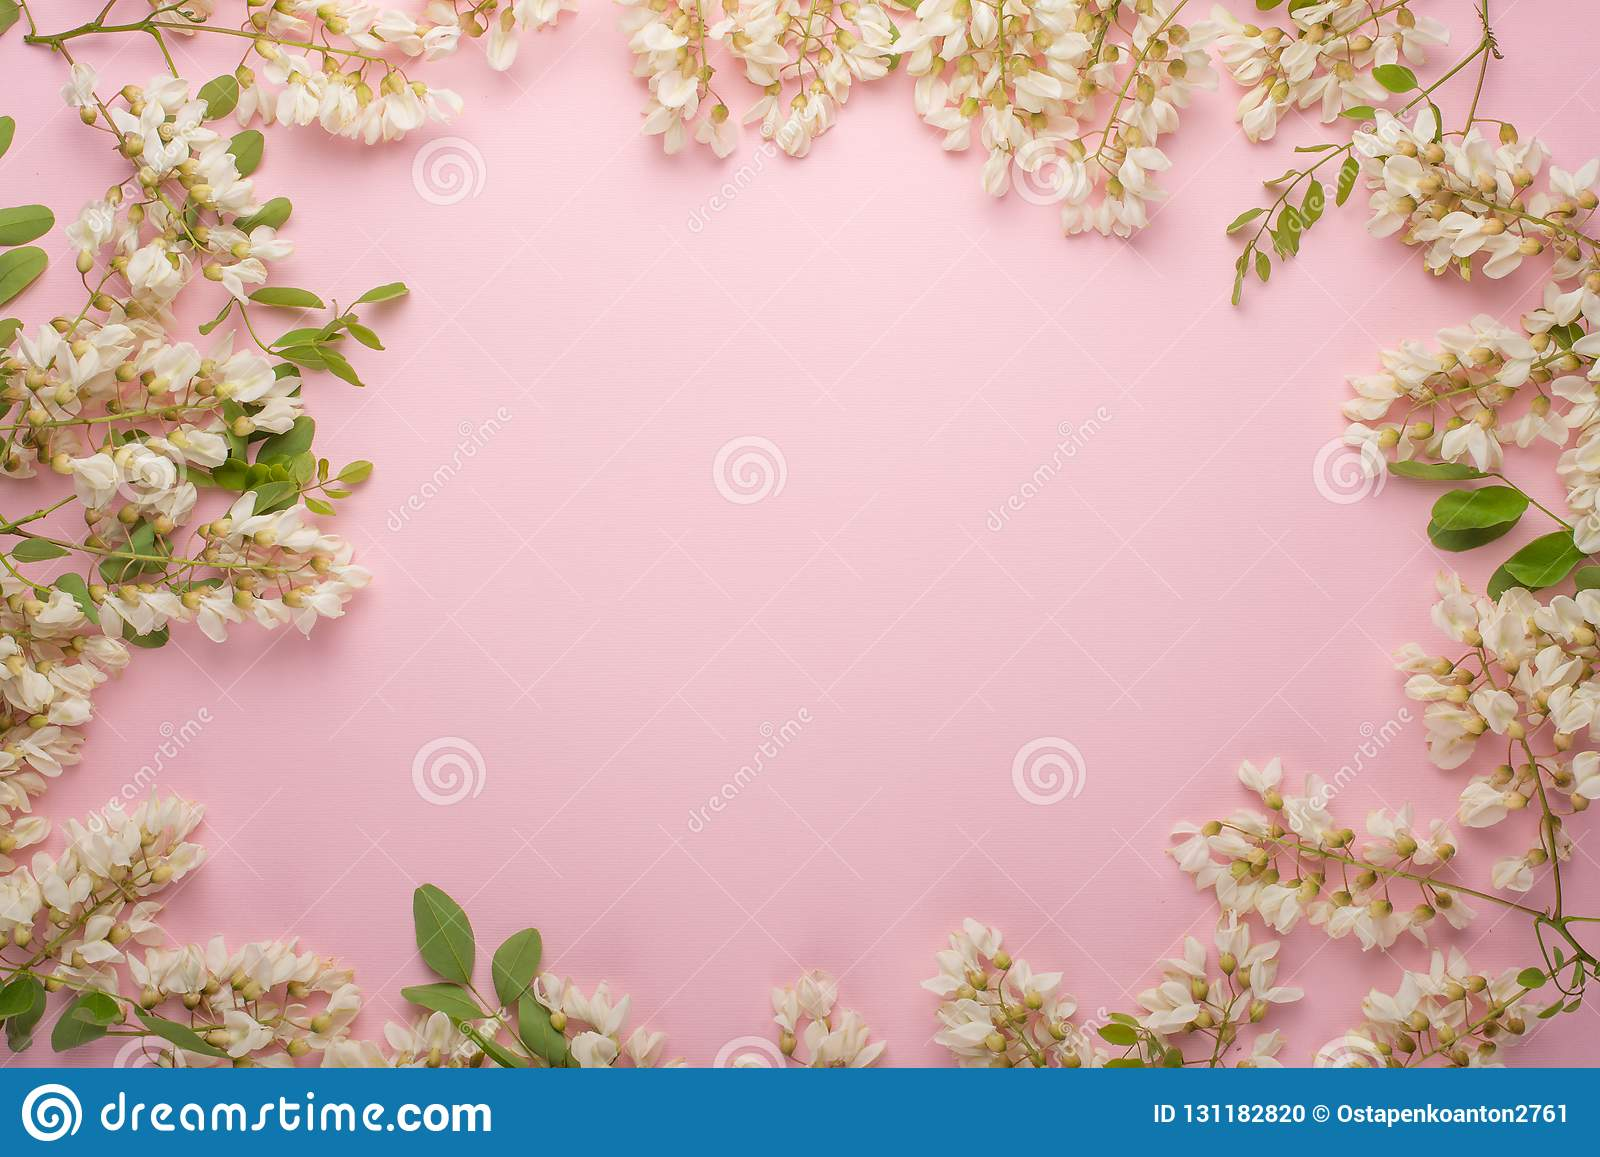 Spring Floral Background Textures And Wallpaper Flat White